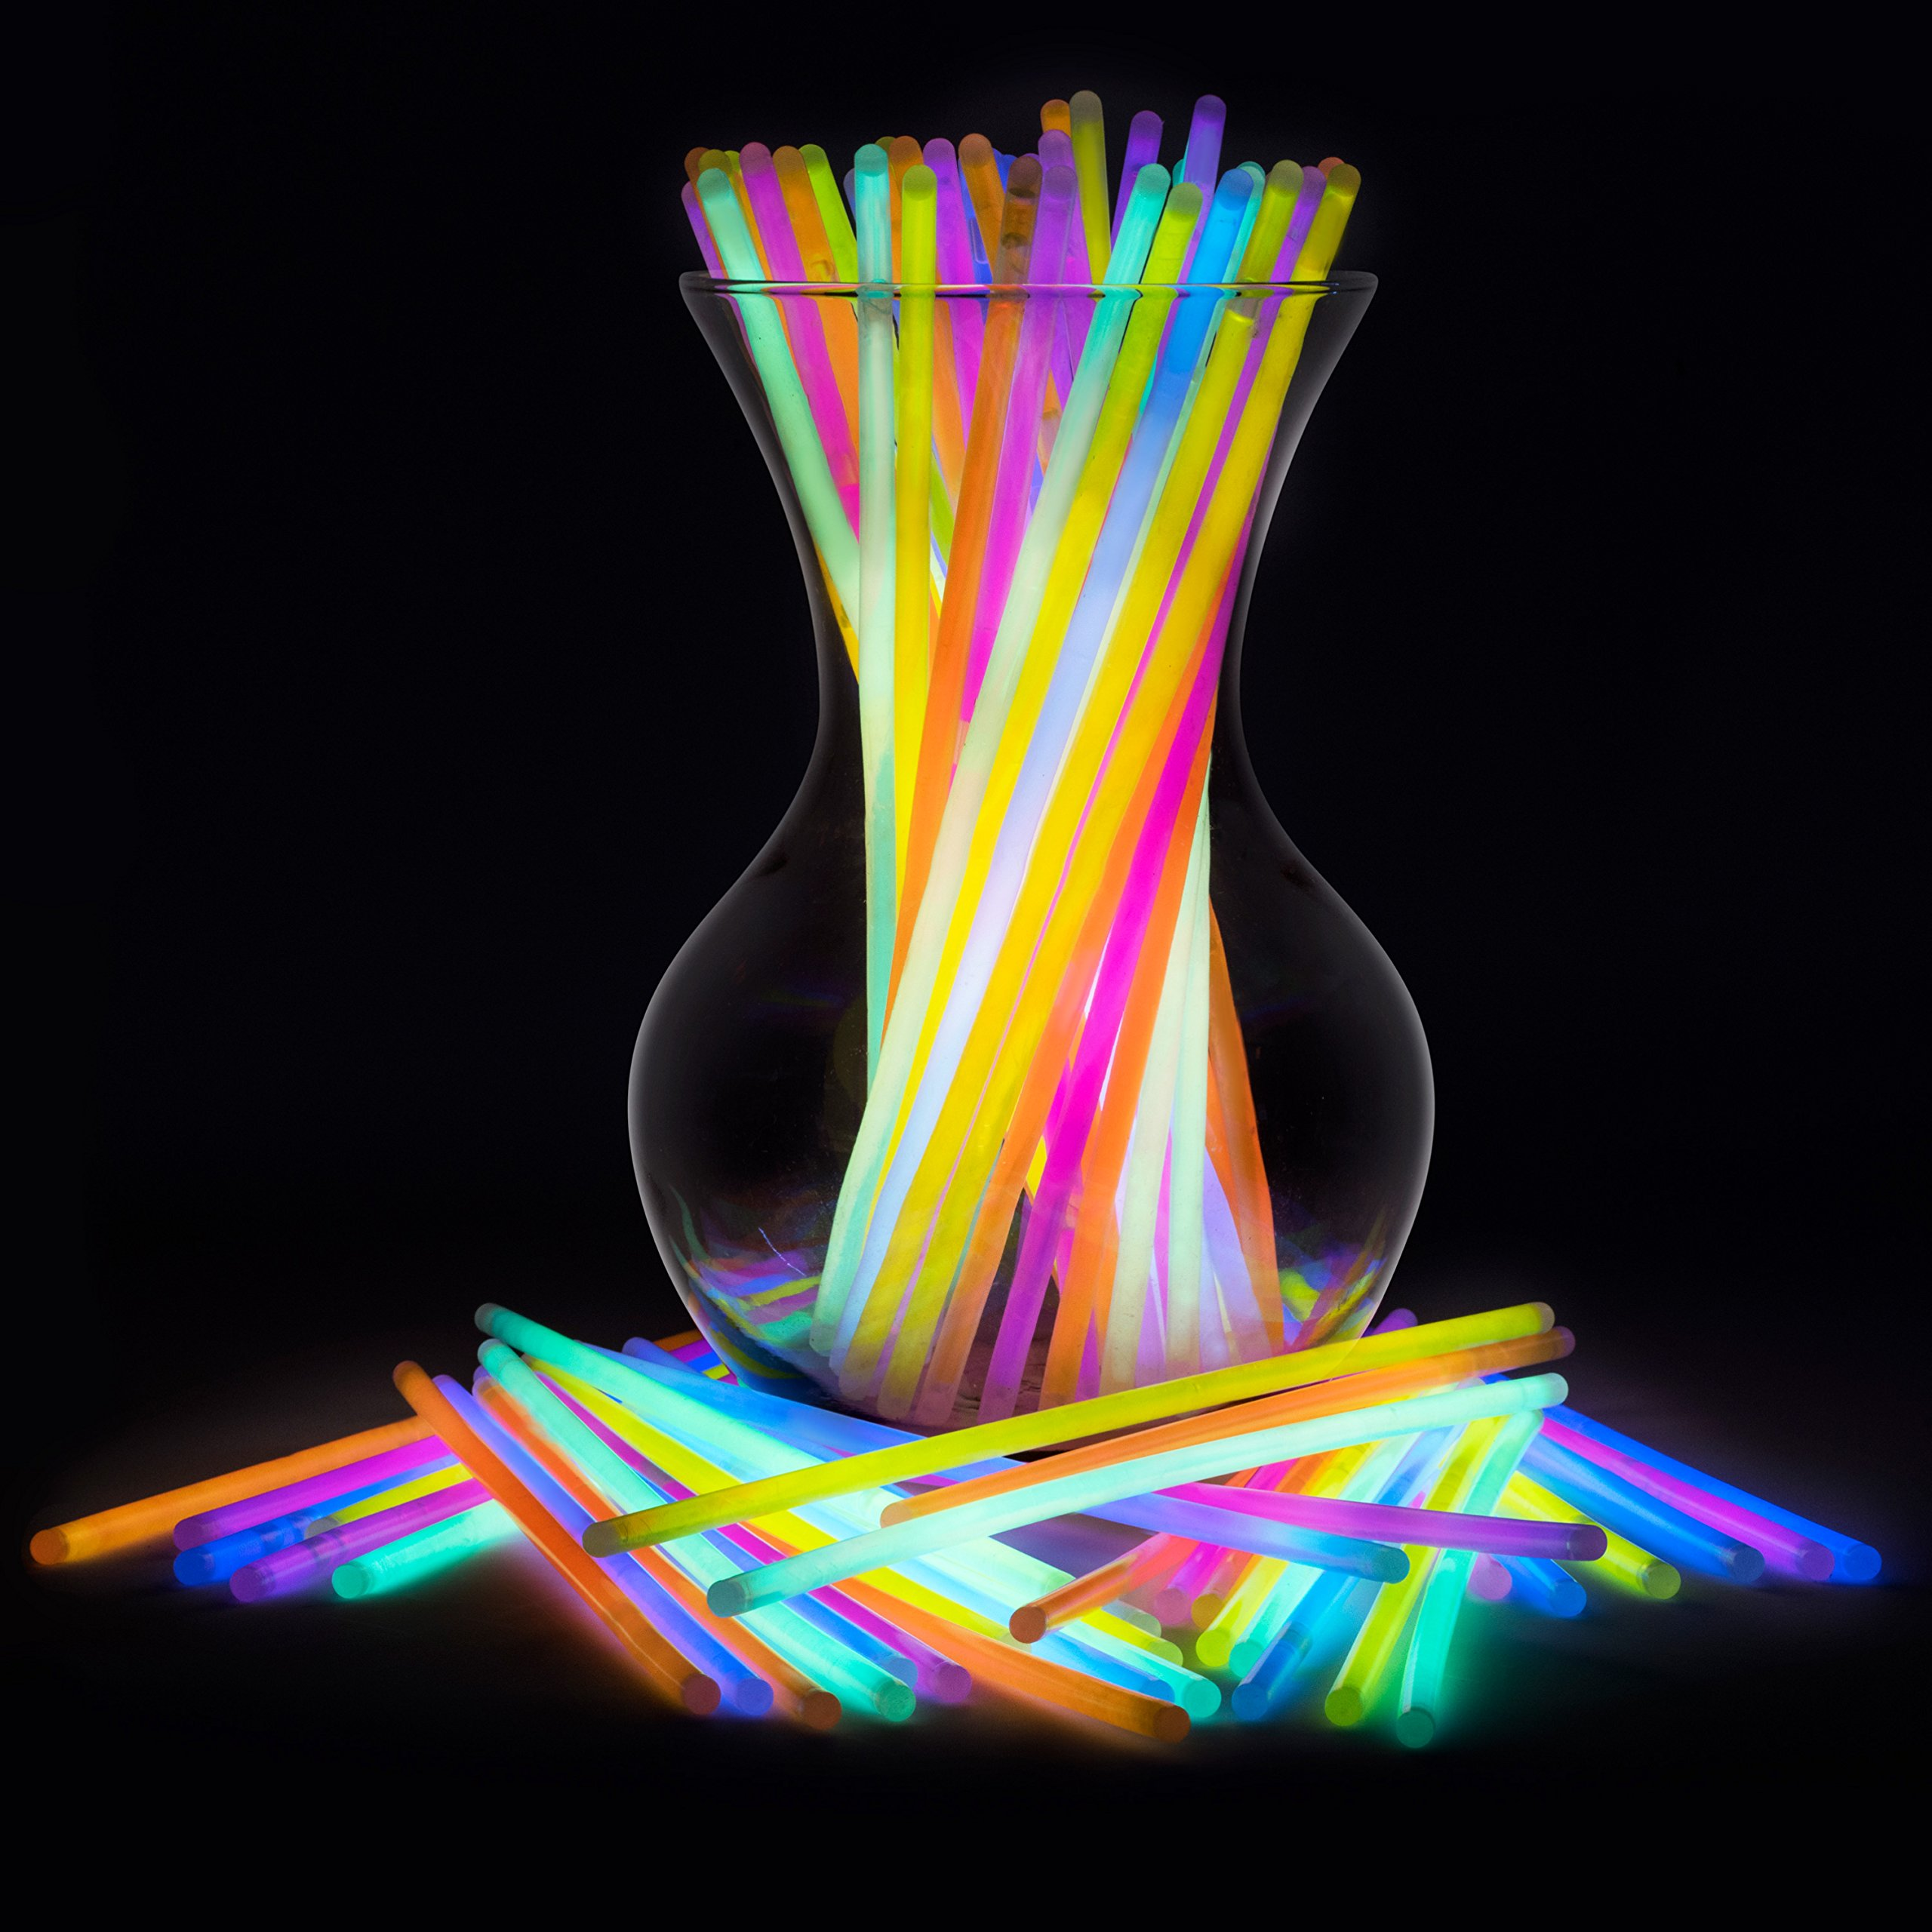 """Glow Sticks Party Favors for Kids - Glow Sticks Bulk Neon Party Supplies - 100 8"""" Bulk Glow Sticks Party Pack with Connectors to Make Glow Sticks Necklaces and Party Glow Sticks Fun"""